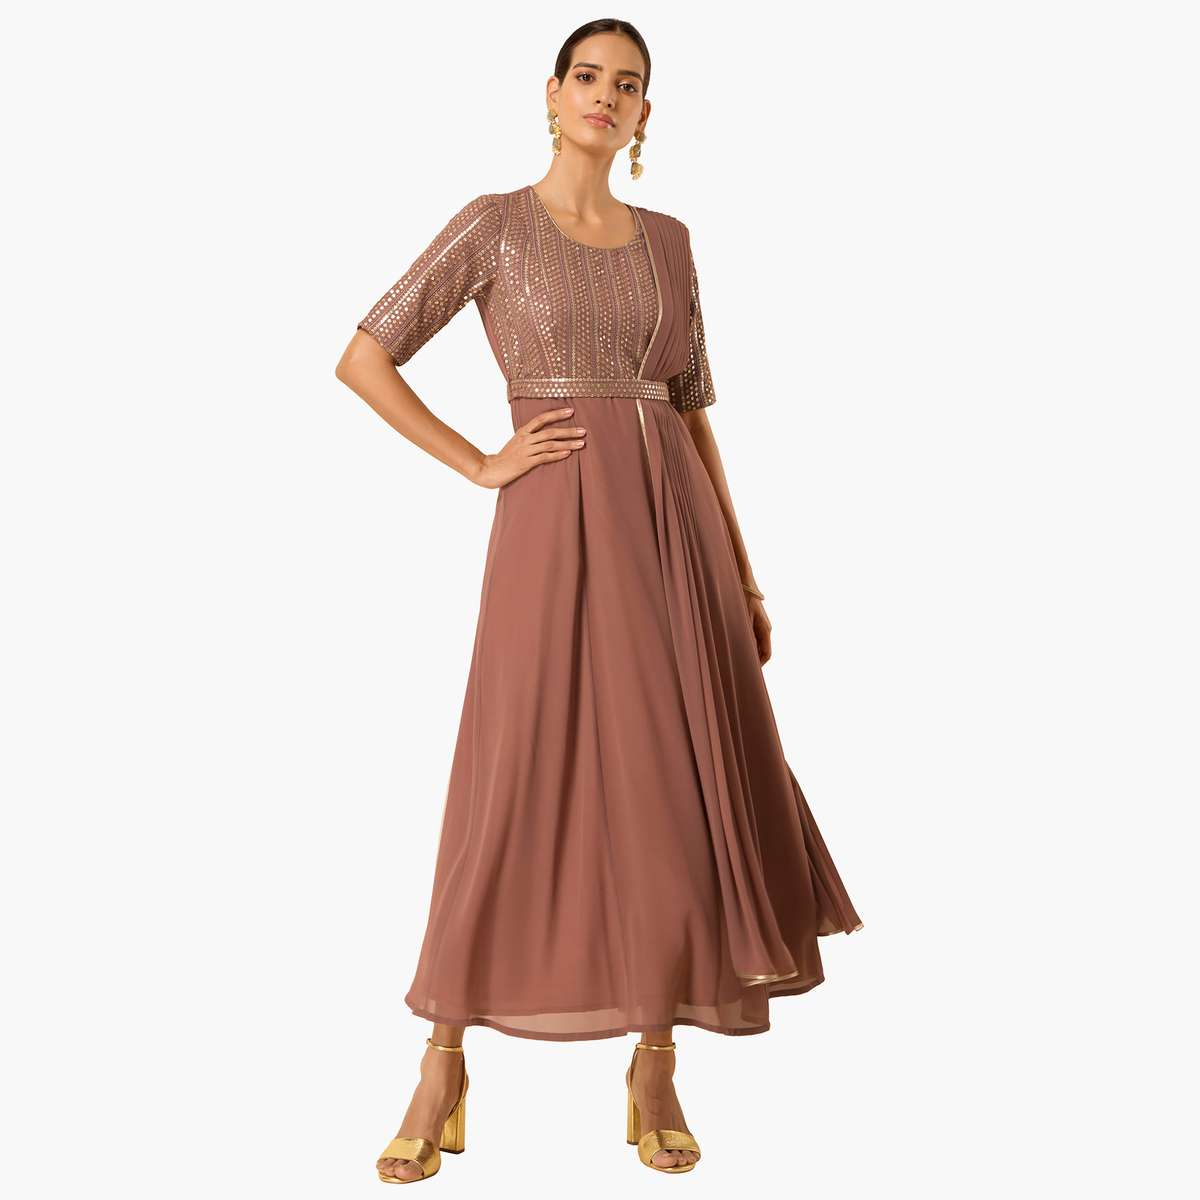 5.INDYA Women Embellished Maxi Tunic with Attached Dupatta and Belt